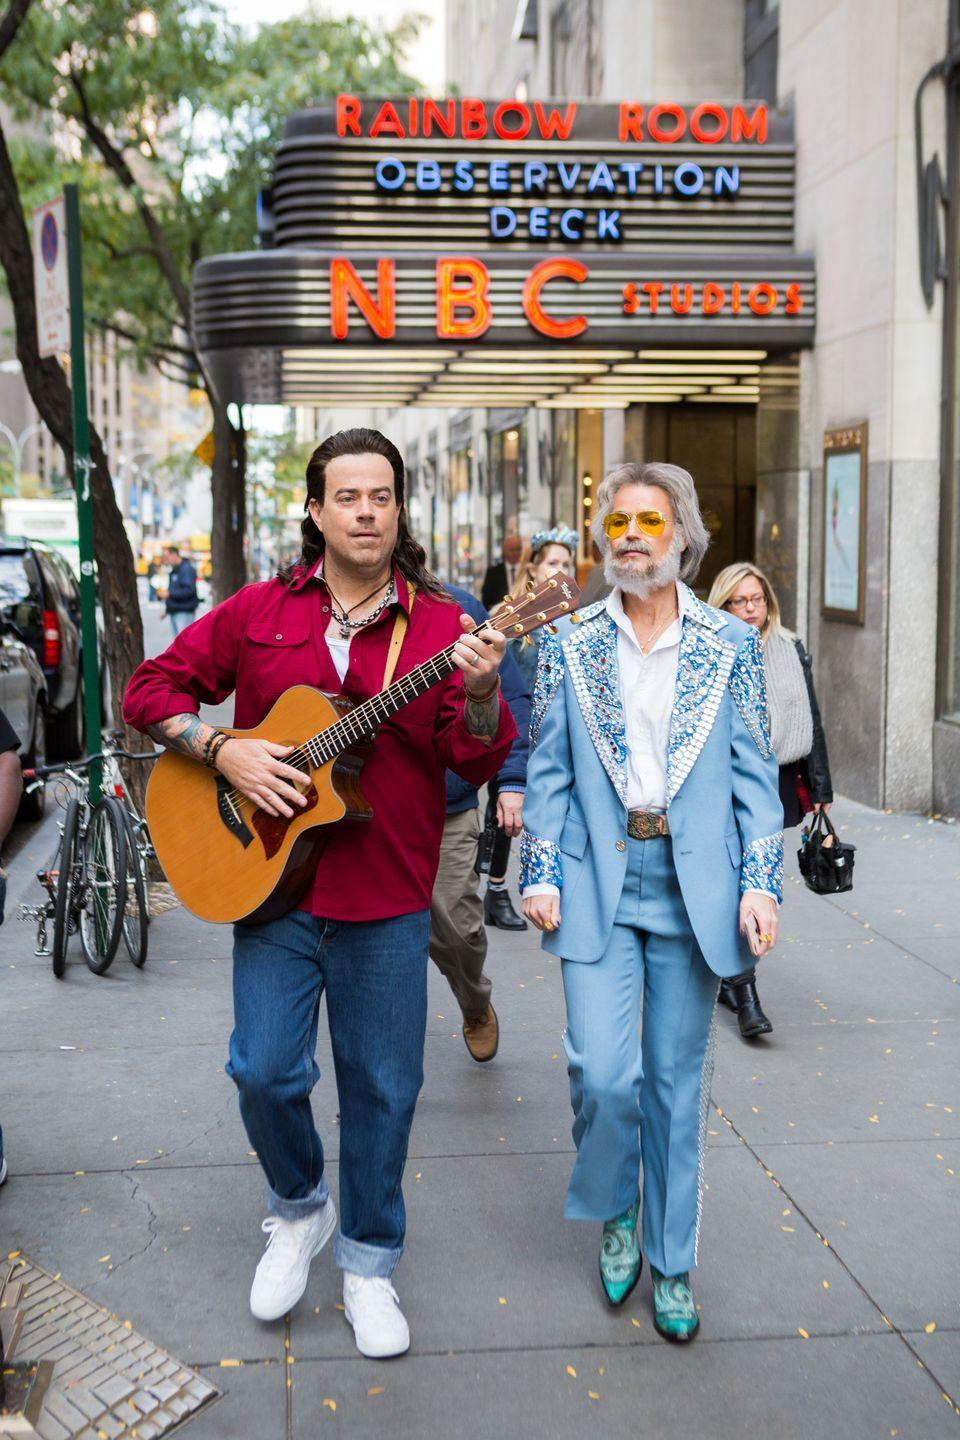 "<p>With a securely fastened mullet, Carson Daly carried the quintessential guitar prop that can only mean he dressed up as the ""Achy Breaky Heart"" singer Billy Ray Cyrus. And he wasn't the only one with some extra hair that year! Savannah Guthrie had a little fuzz on her face while channeling Kenny Rogers. </p>"